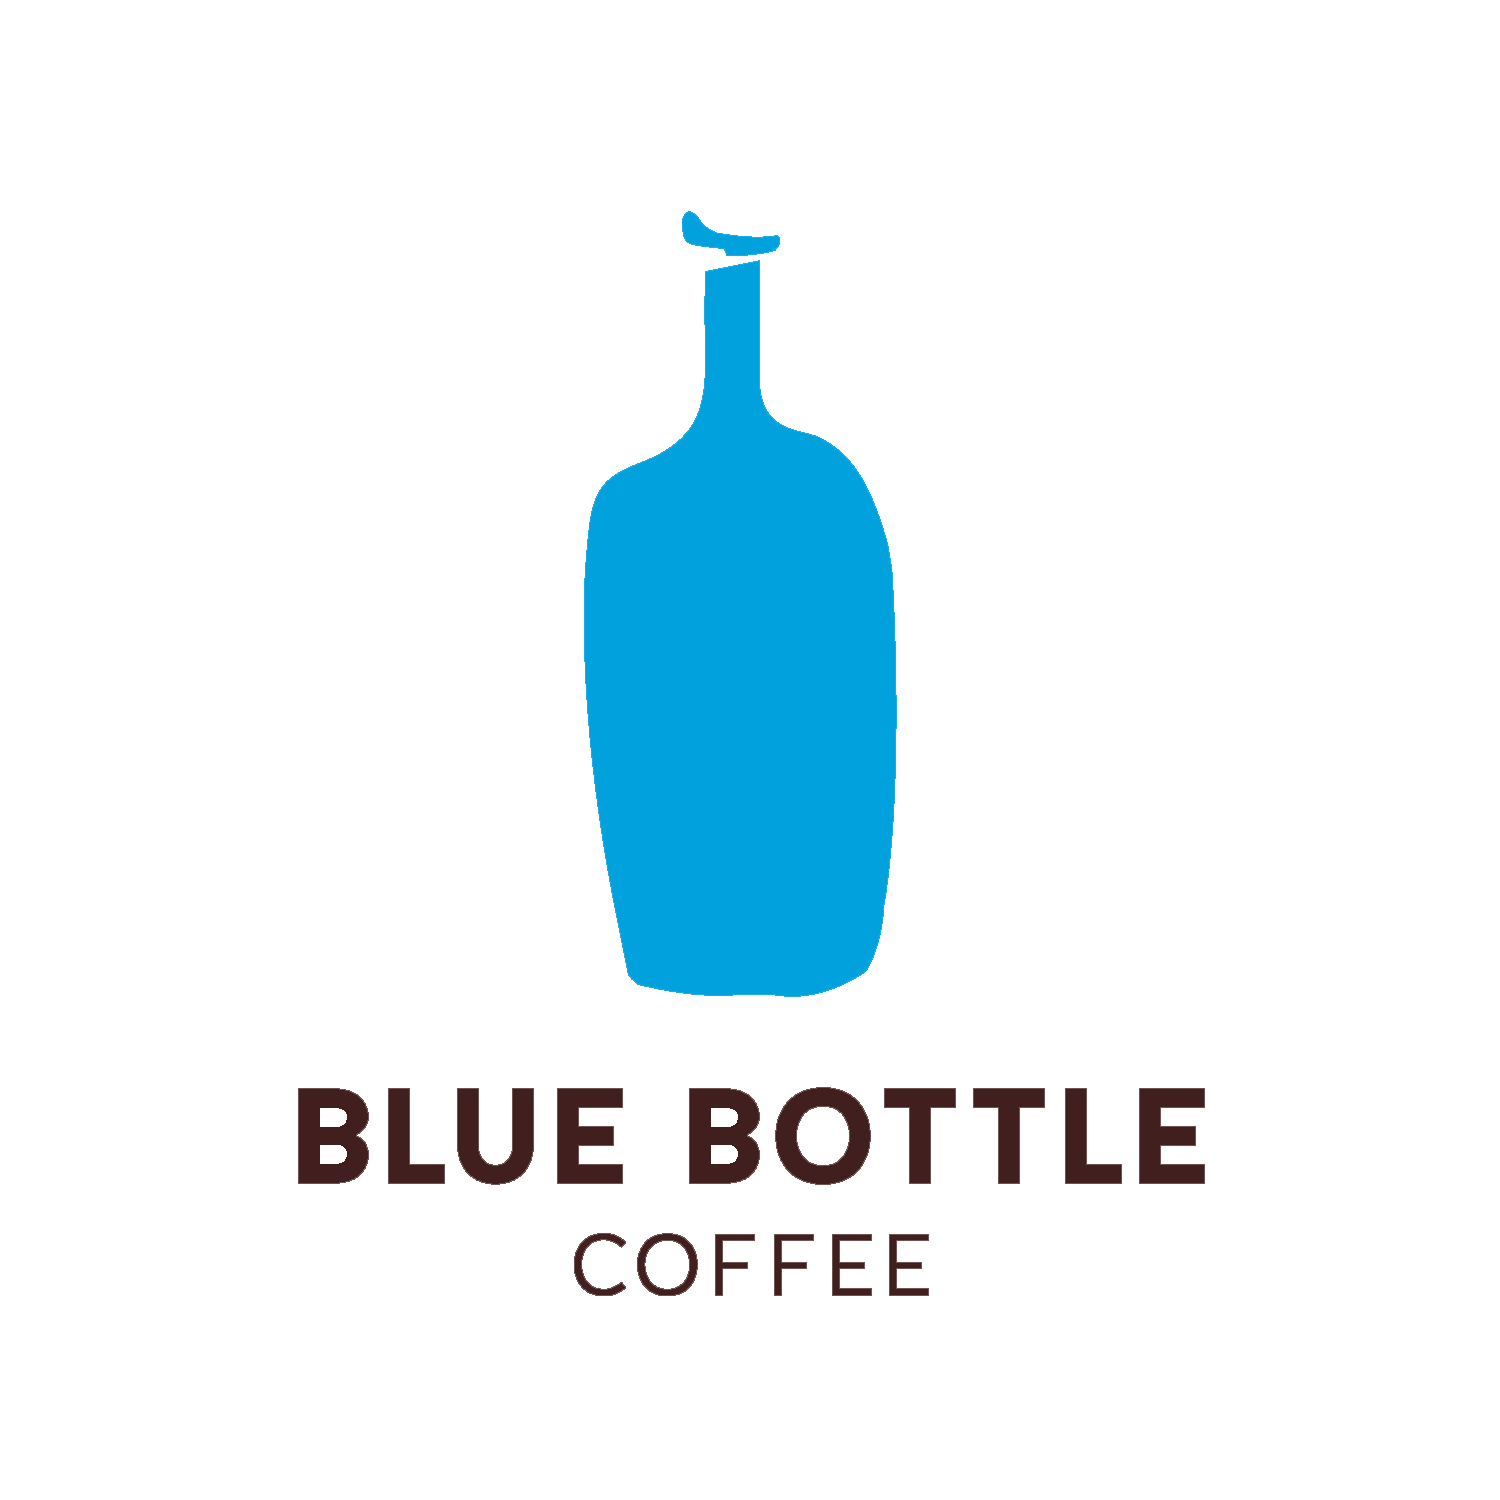 Blue Bottle Coffee company's logo